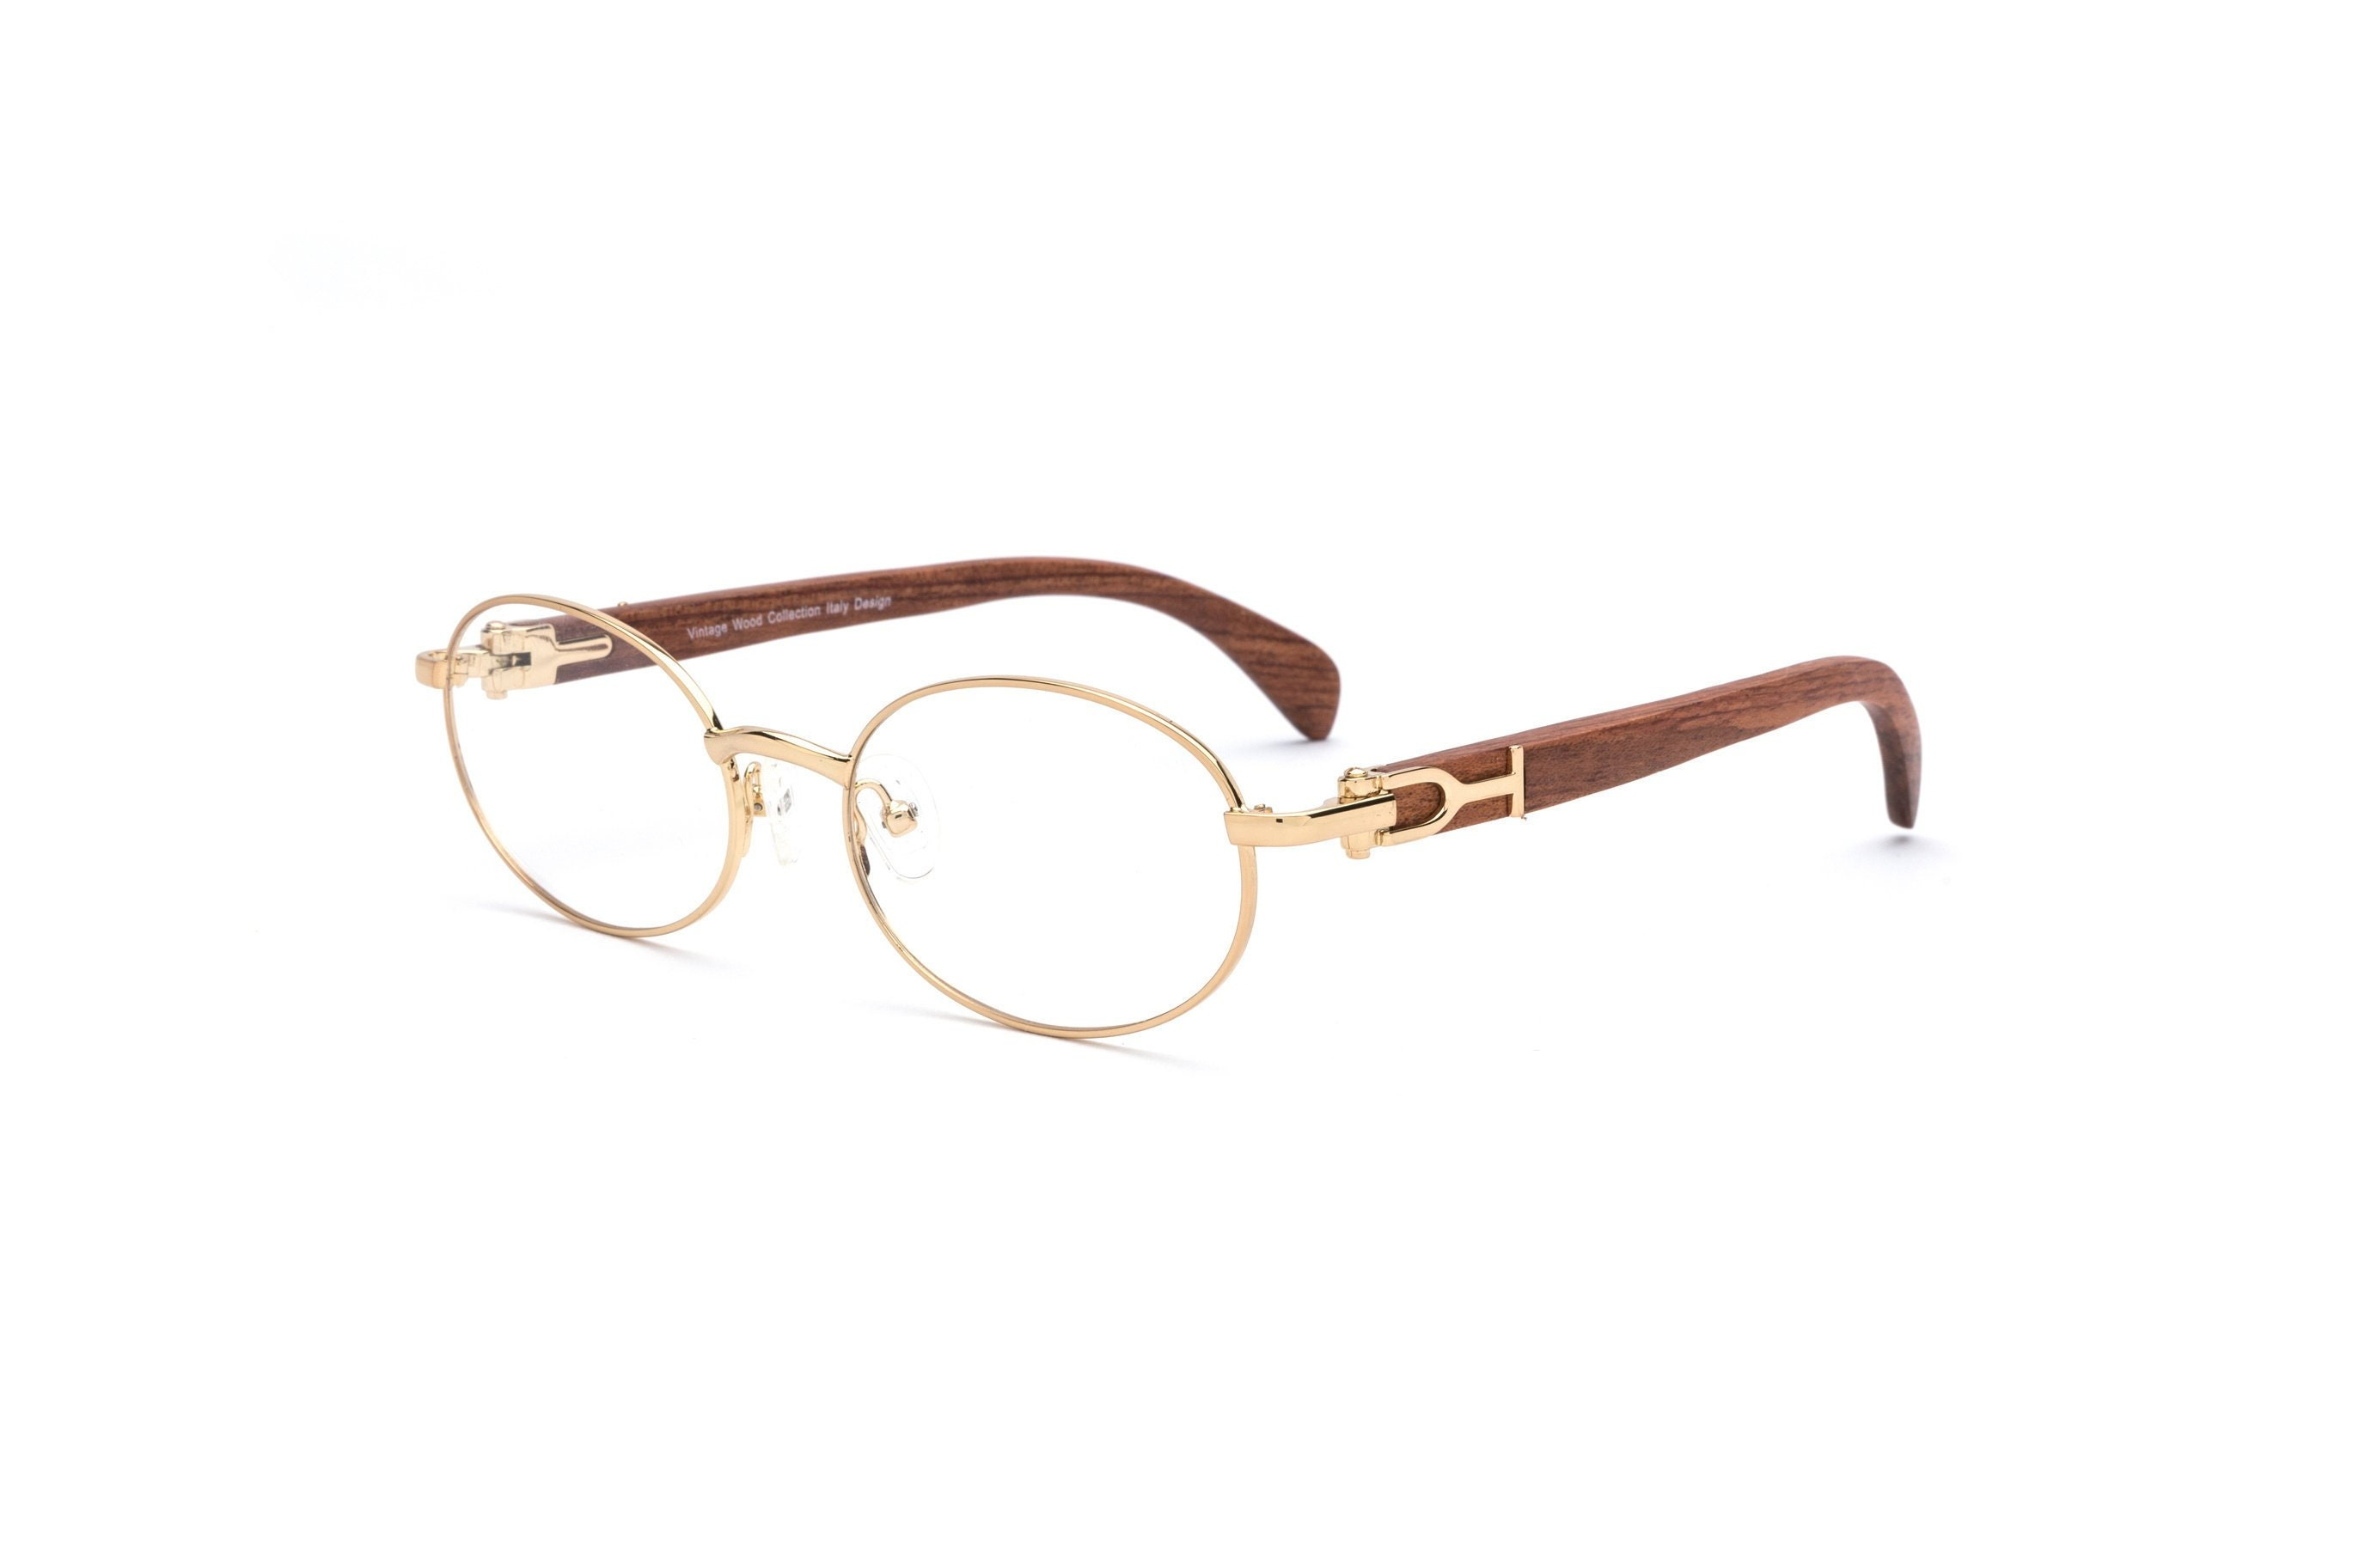 d851d47a10 Cartier Style Wood Frame Glasses Oval Gold Frame Brown